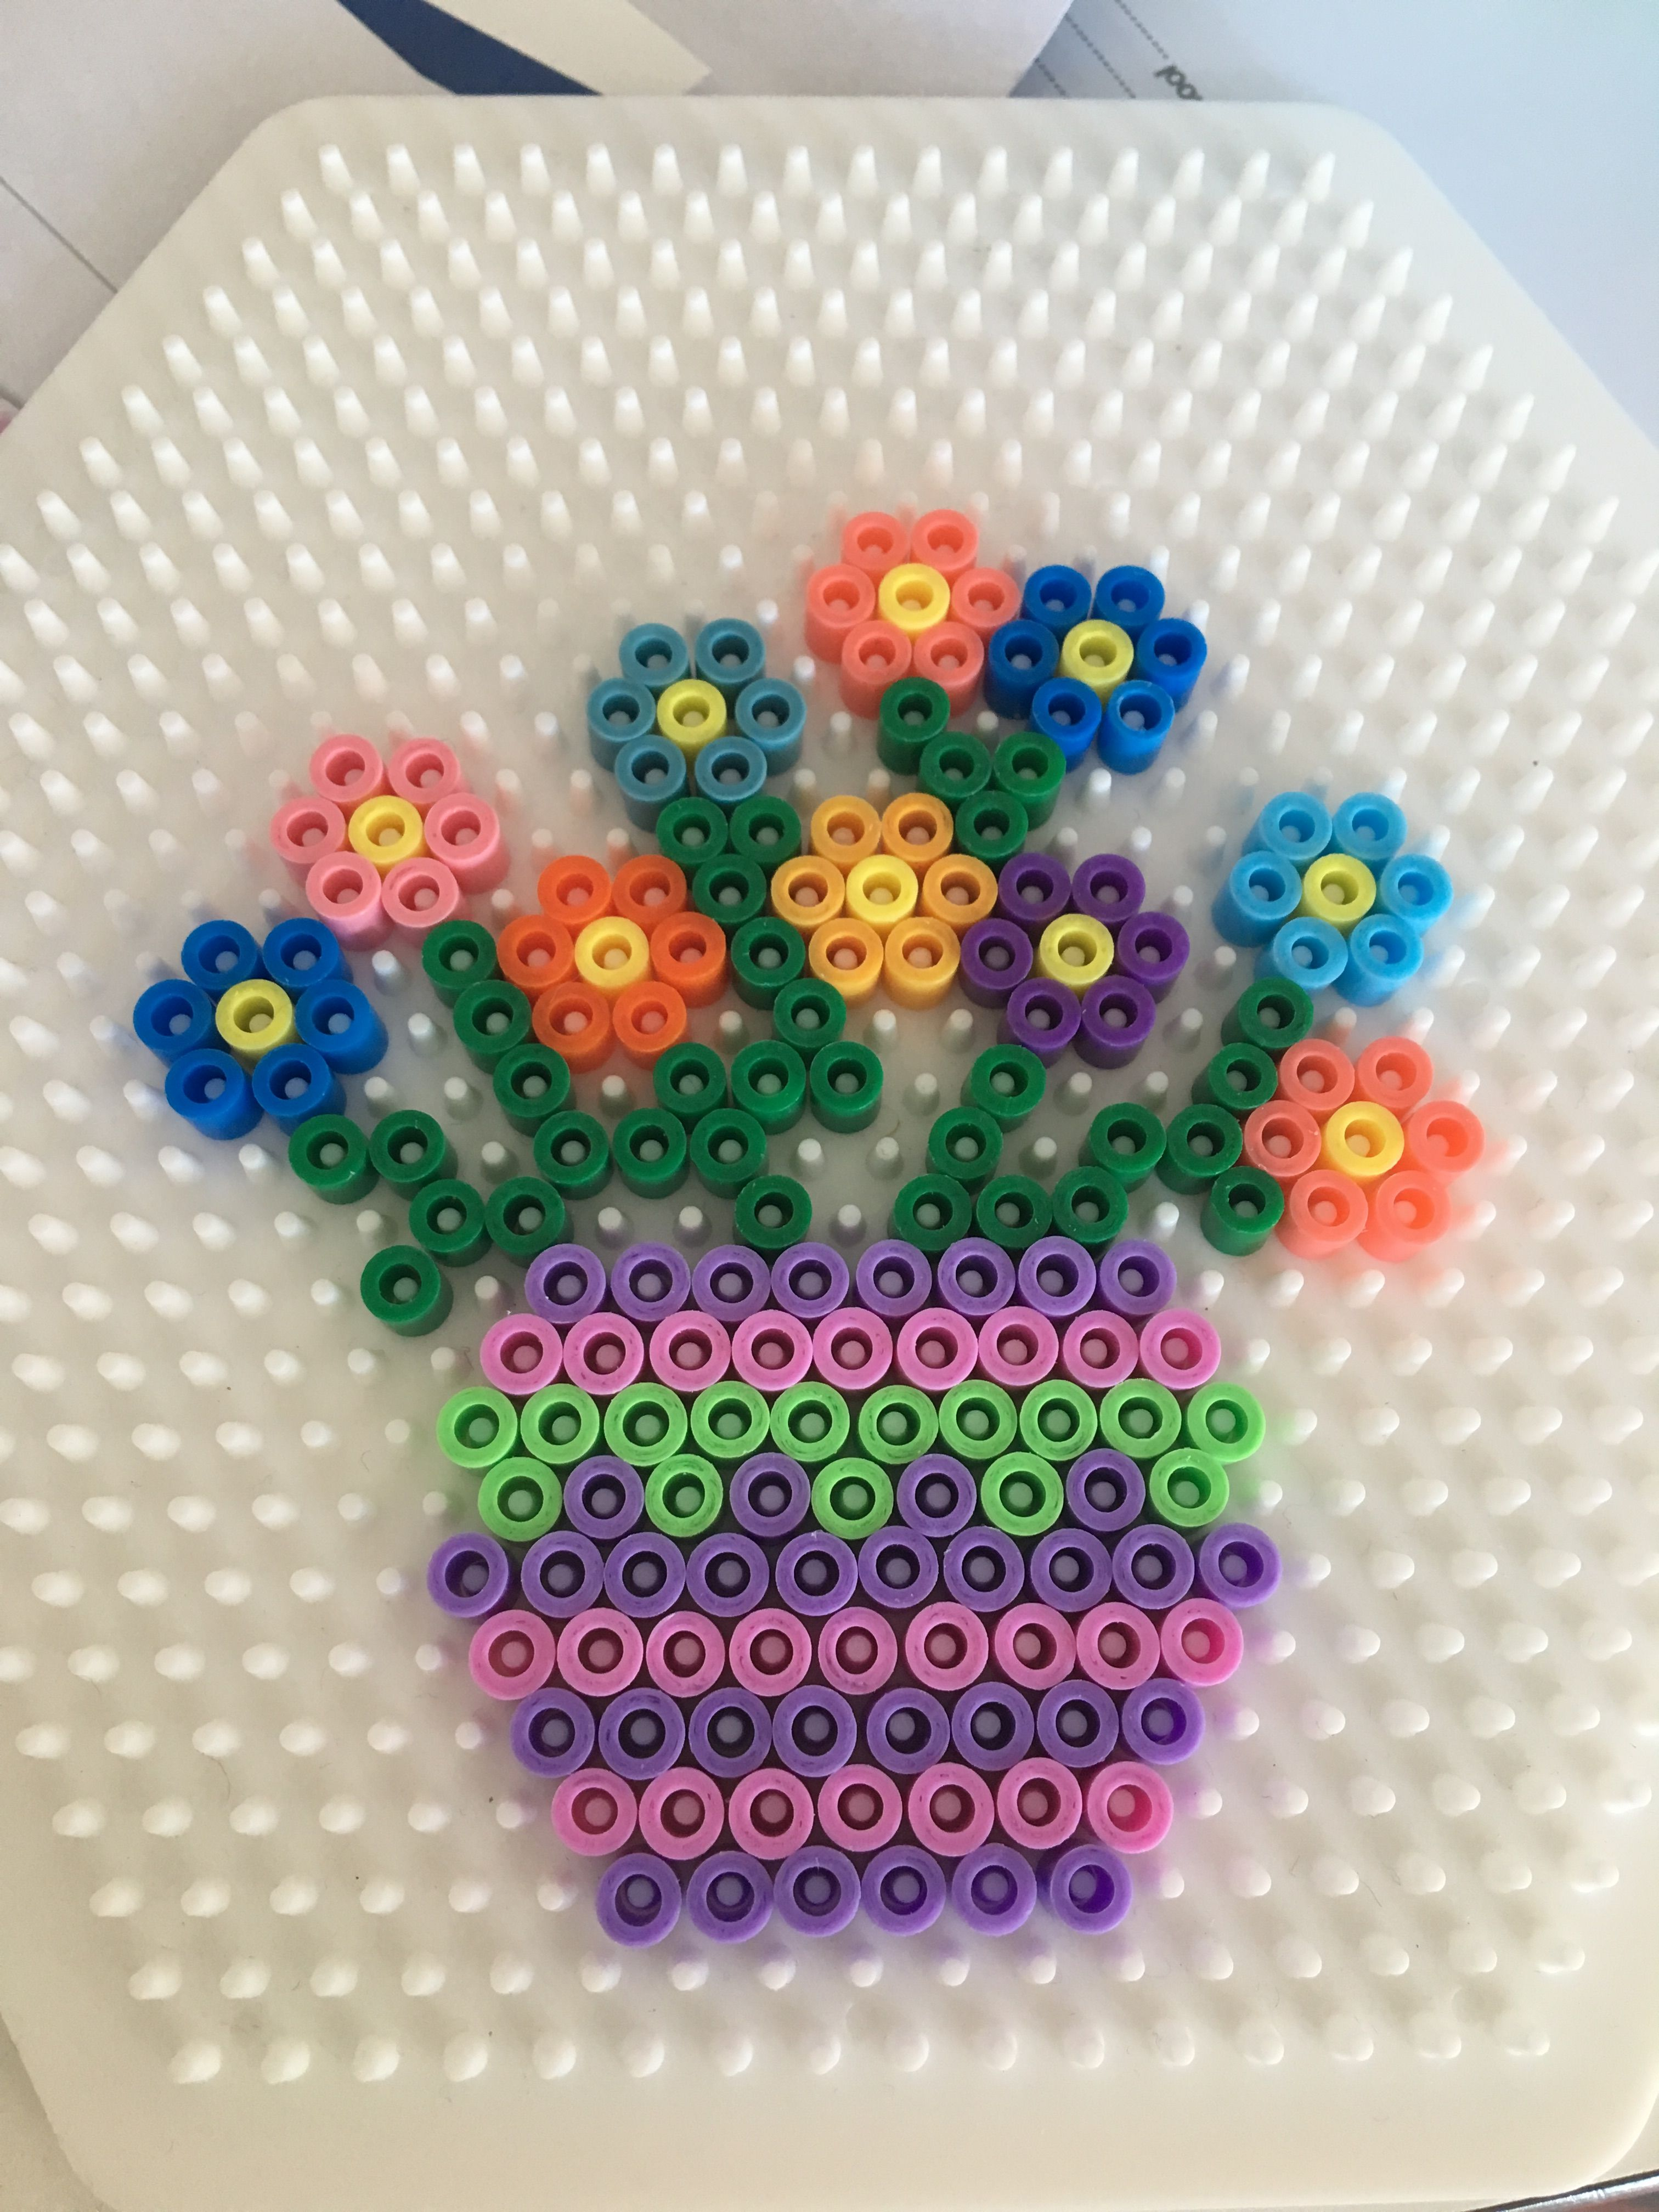 Flower vase hama bead design perfect for mothers day pyssla flower vase hama bead design perfect for mothers day reviewsmspy